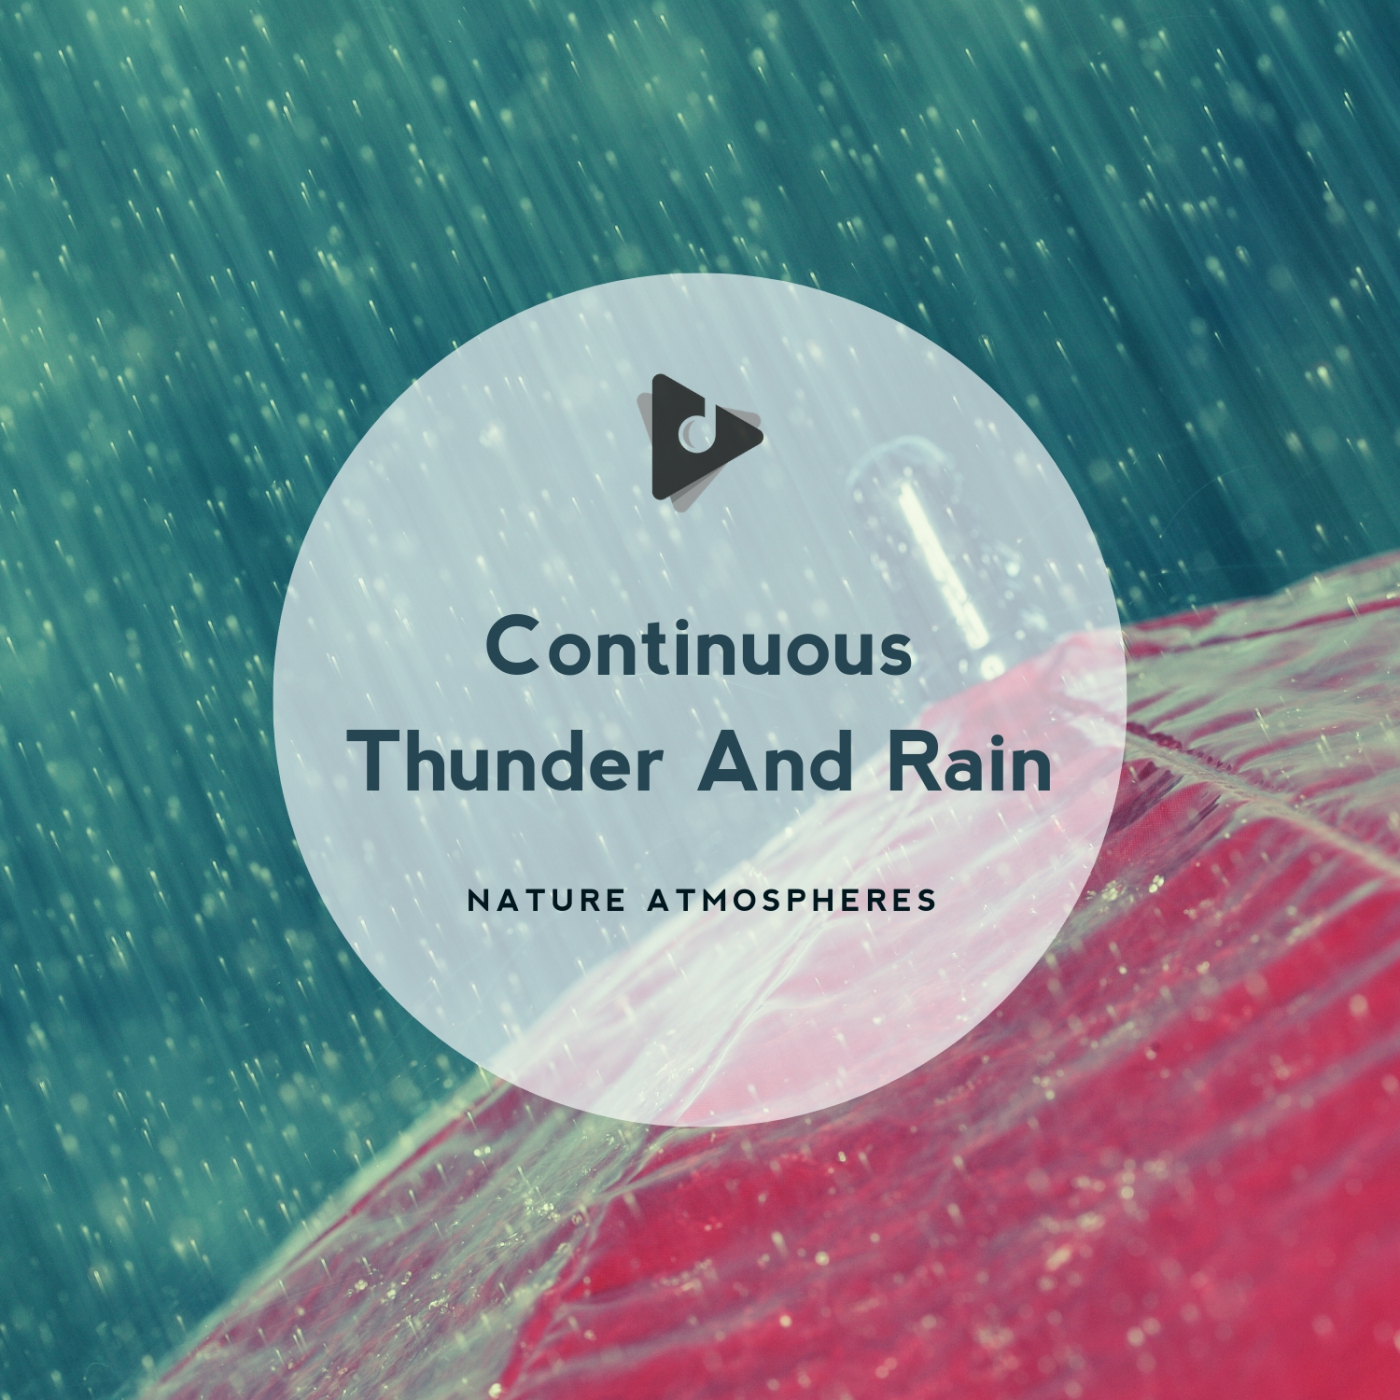 Continuous Thunder And Rain